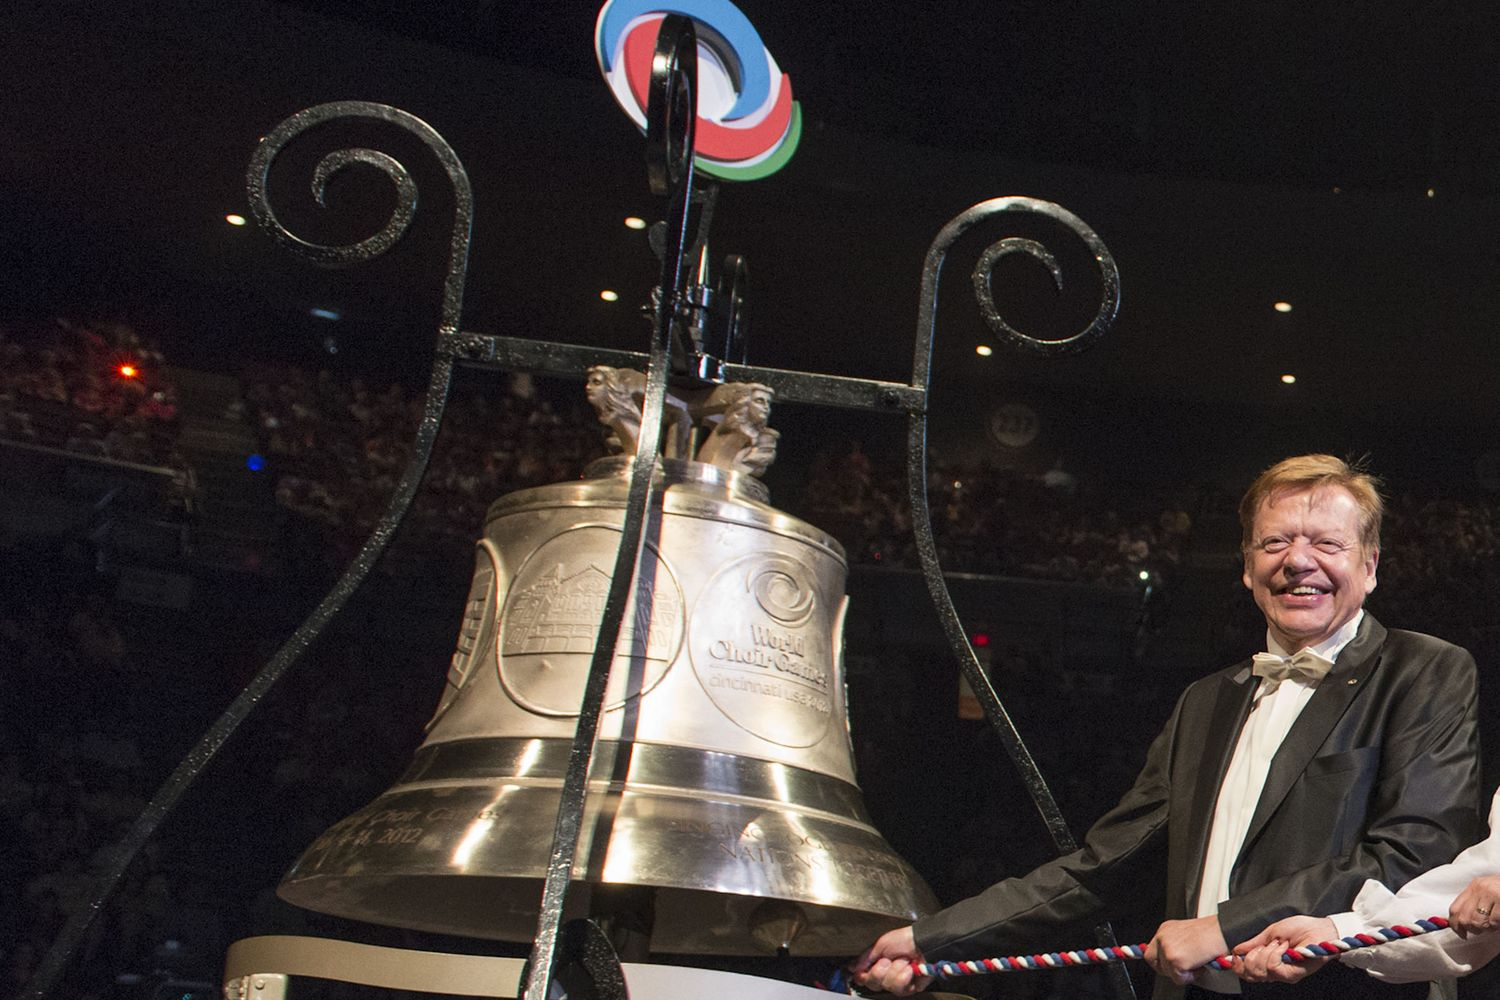 Günter Titsch ringing the World Choir Games Peace Bell © Michael Keating